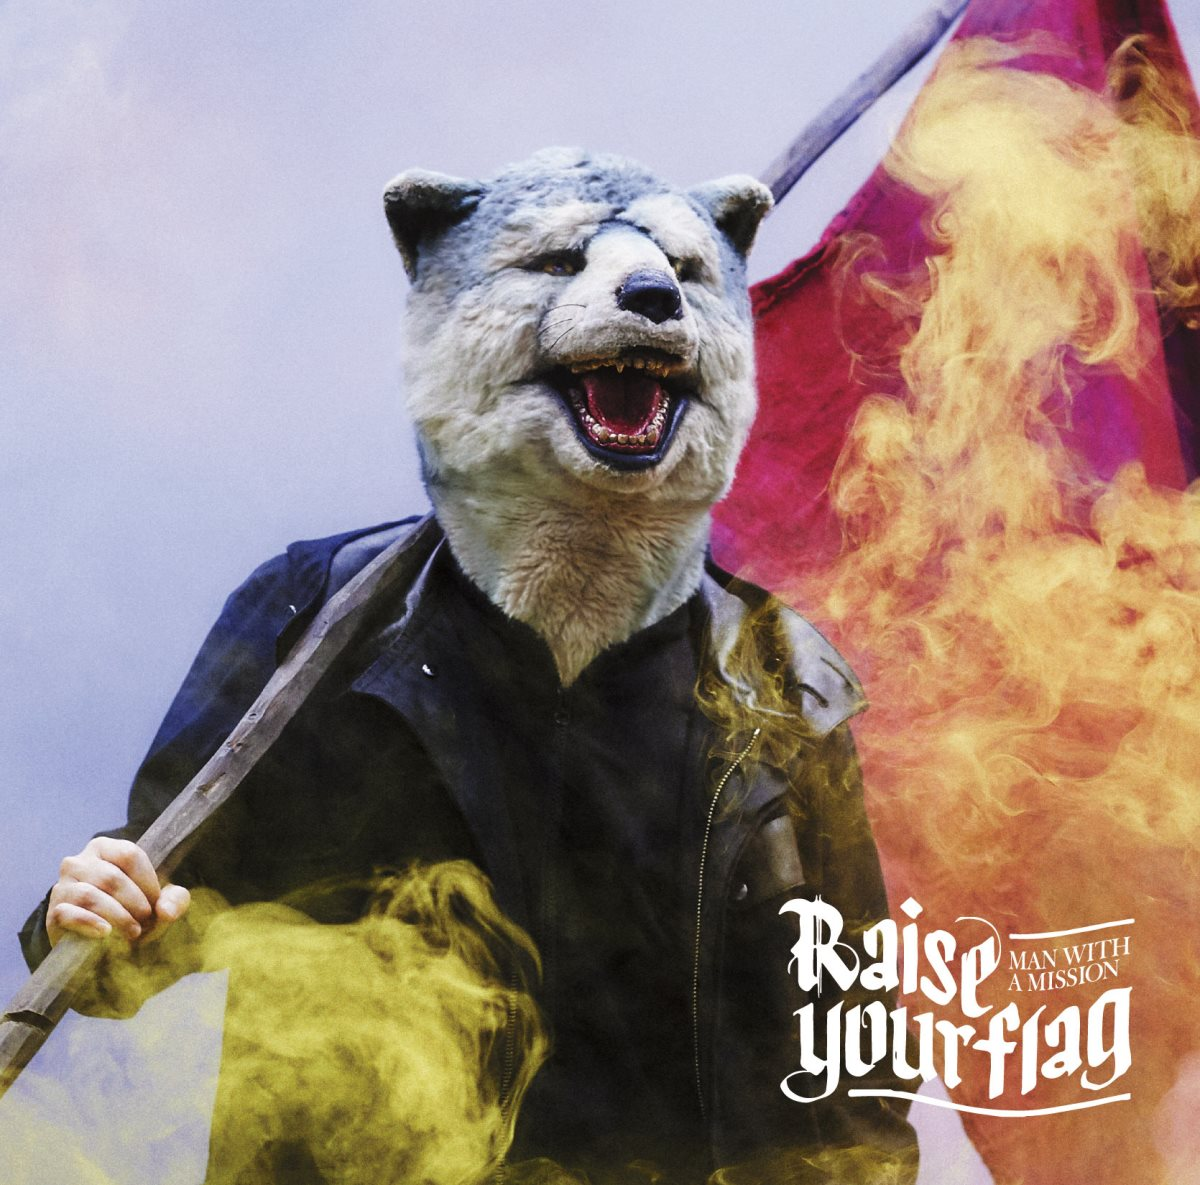 MAN WITH A MISSION - First Press Limited Edition